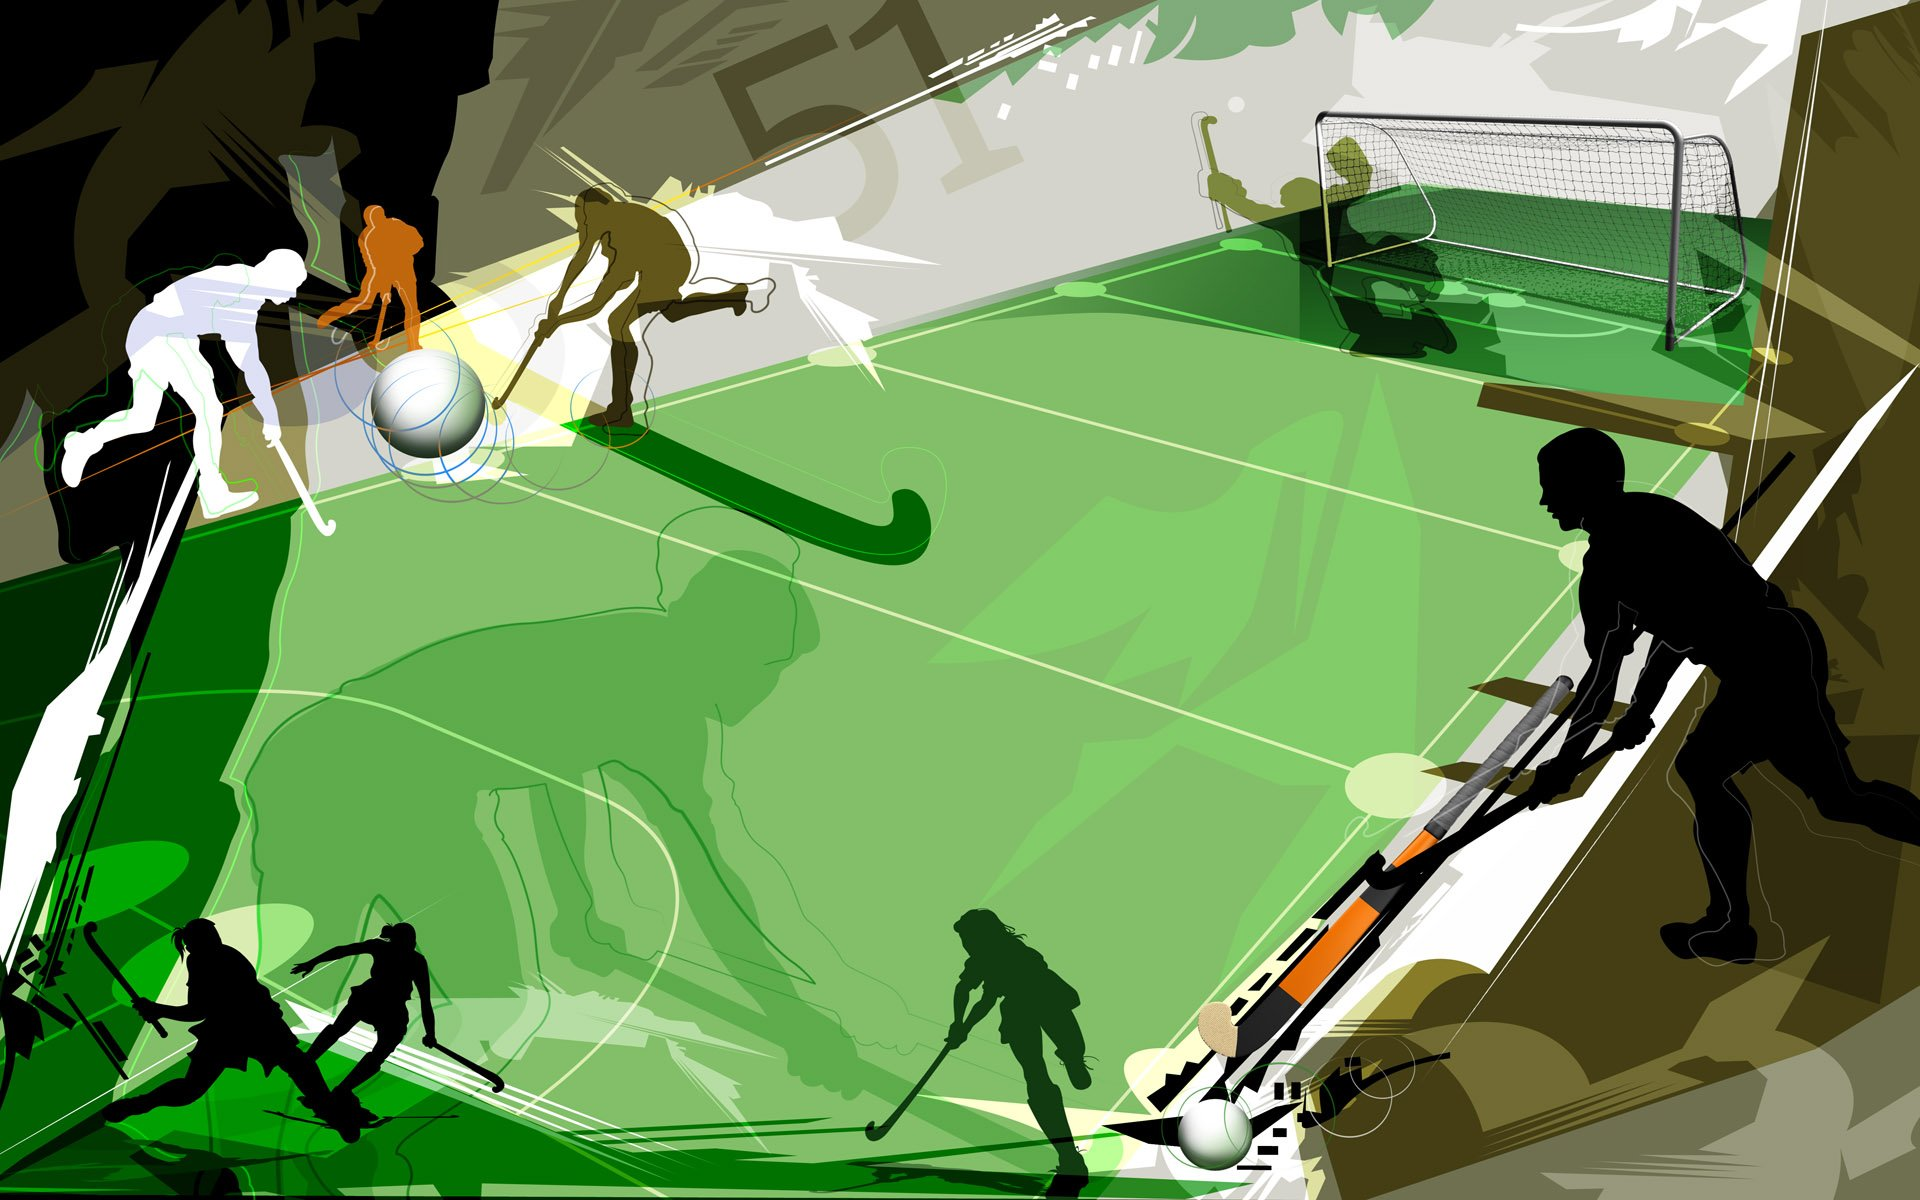 1920x1200 - Field hockey Wallpapers 13